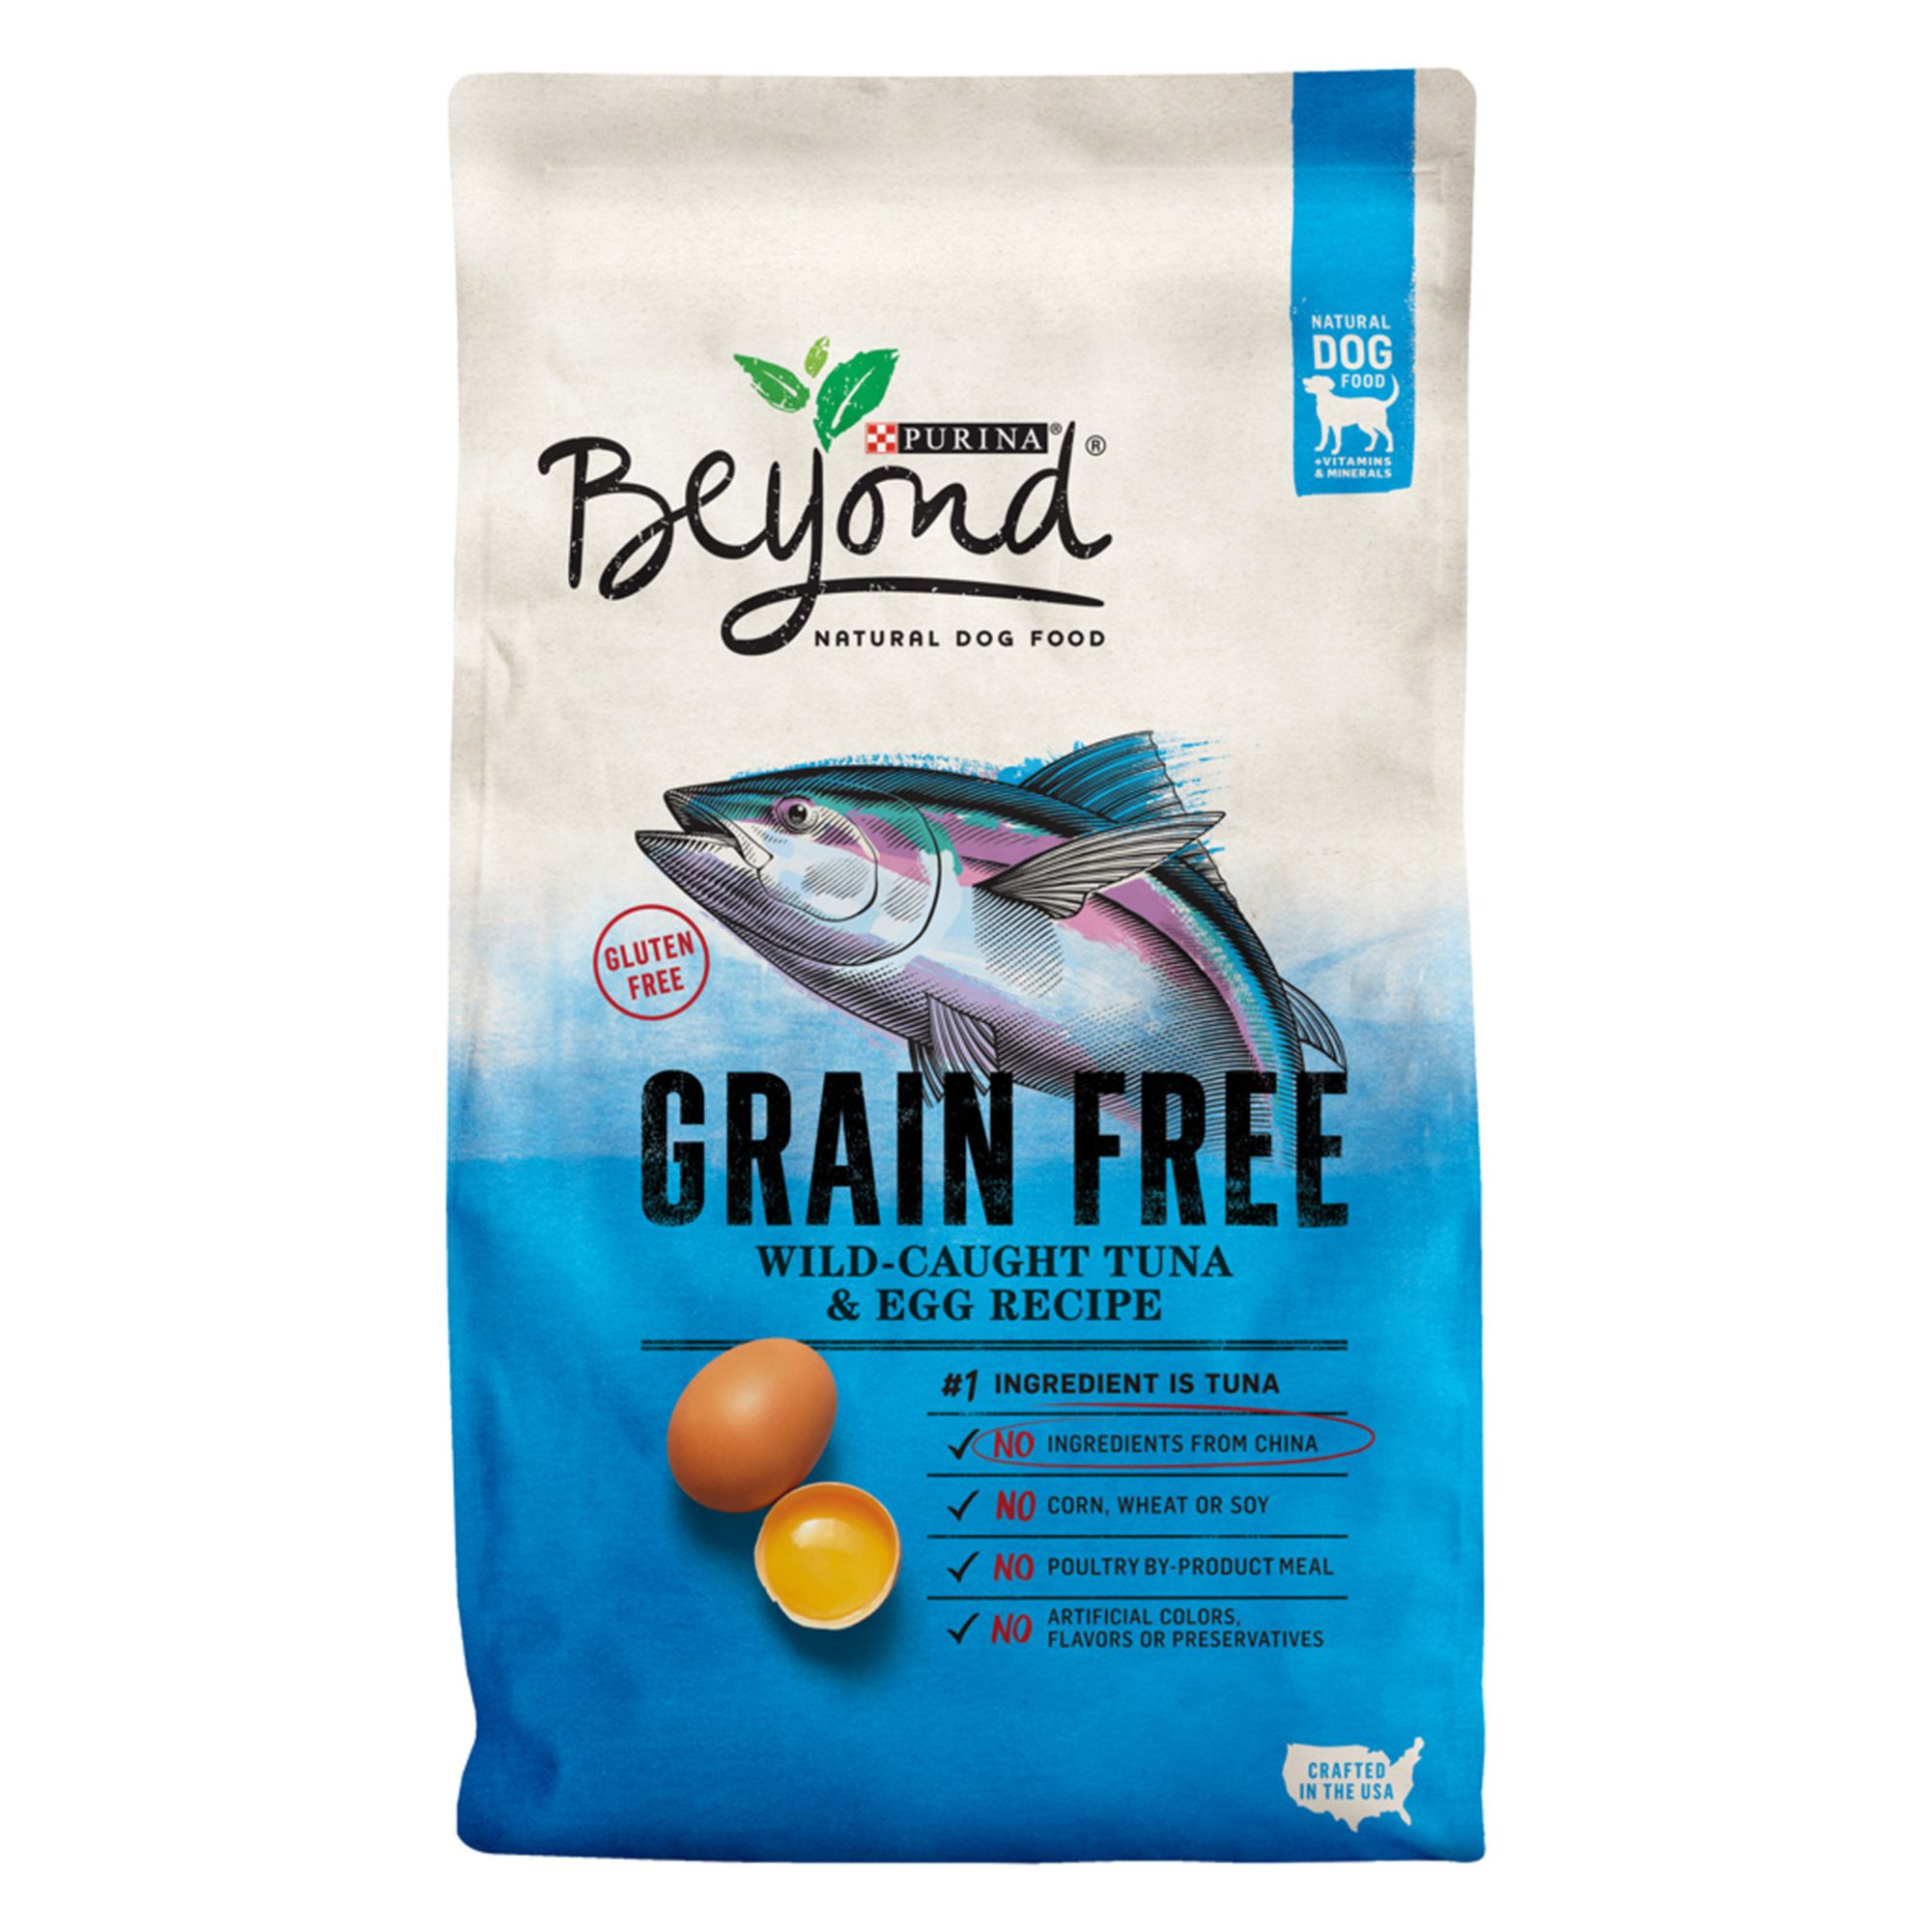 Purina® Beyond Dog Food - Natural, Grain Free, Gluten Free, Tuna and Egg size: 3 Lb 5226178